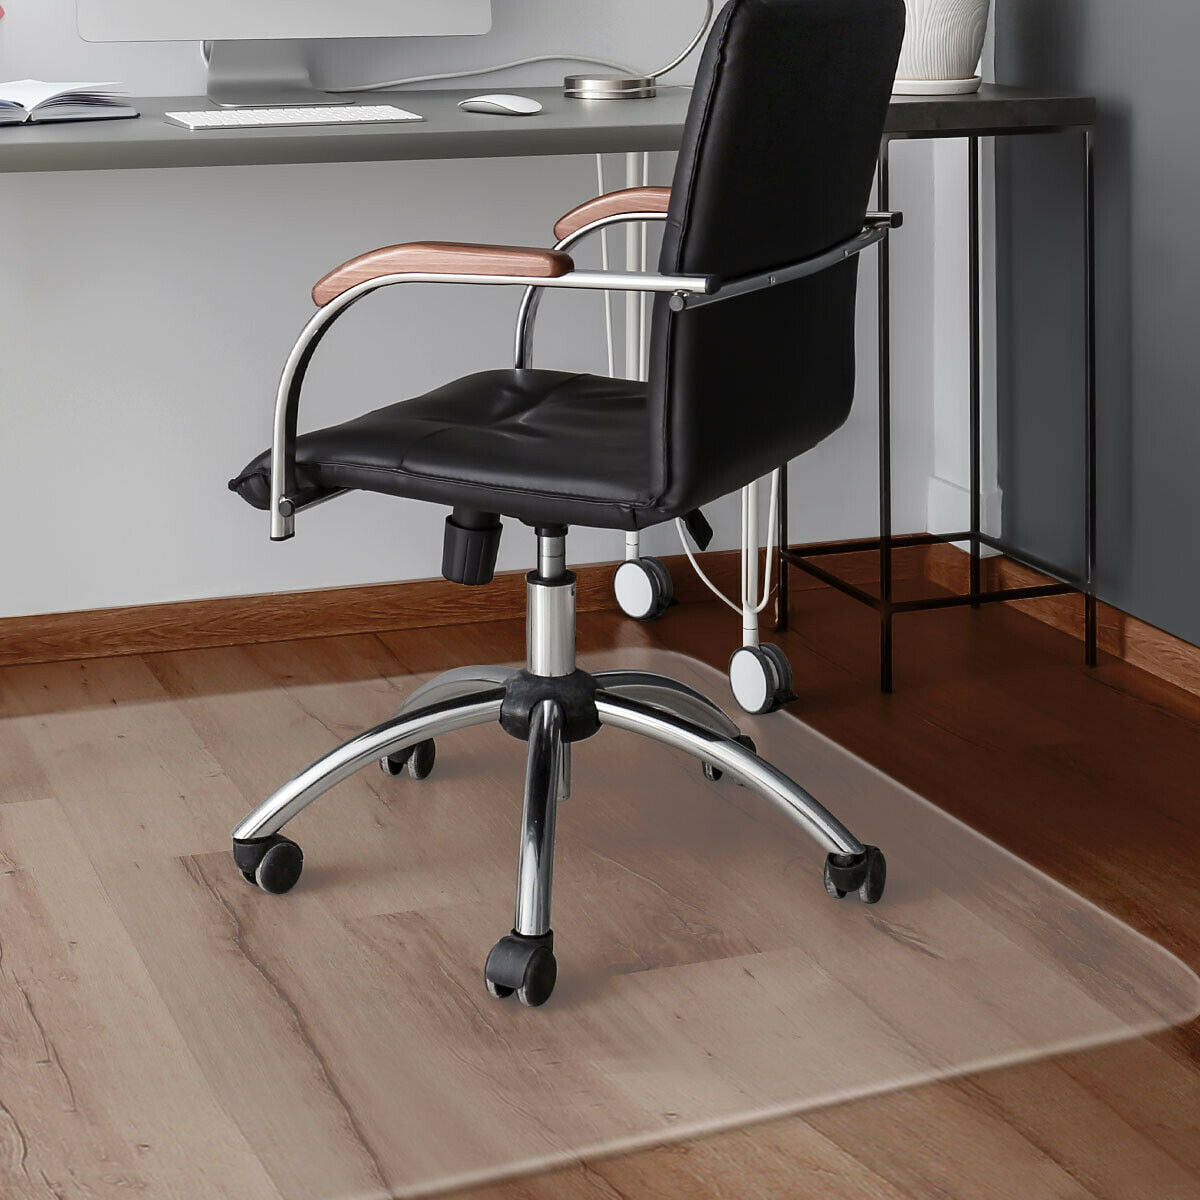 Costway 47 X 59 Pvc Chair Floor Mat Home Office Protector For Hard Wood Floors Walmart Com Walmart Com